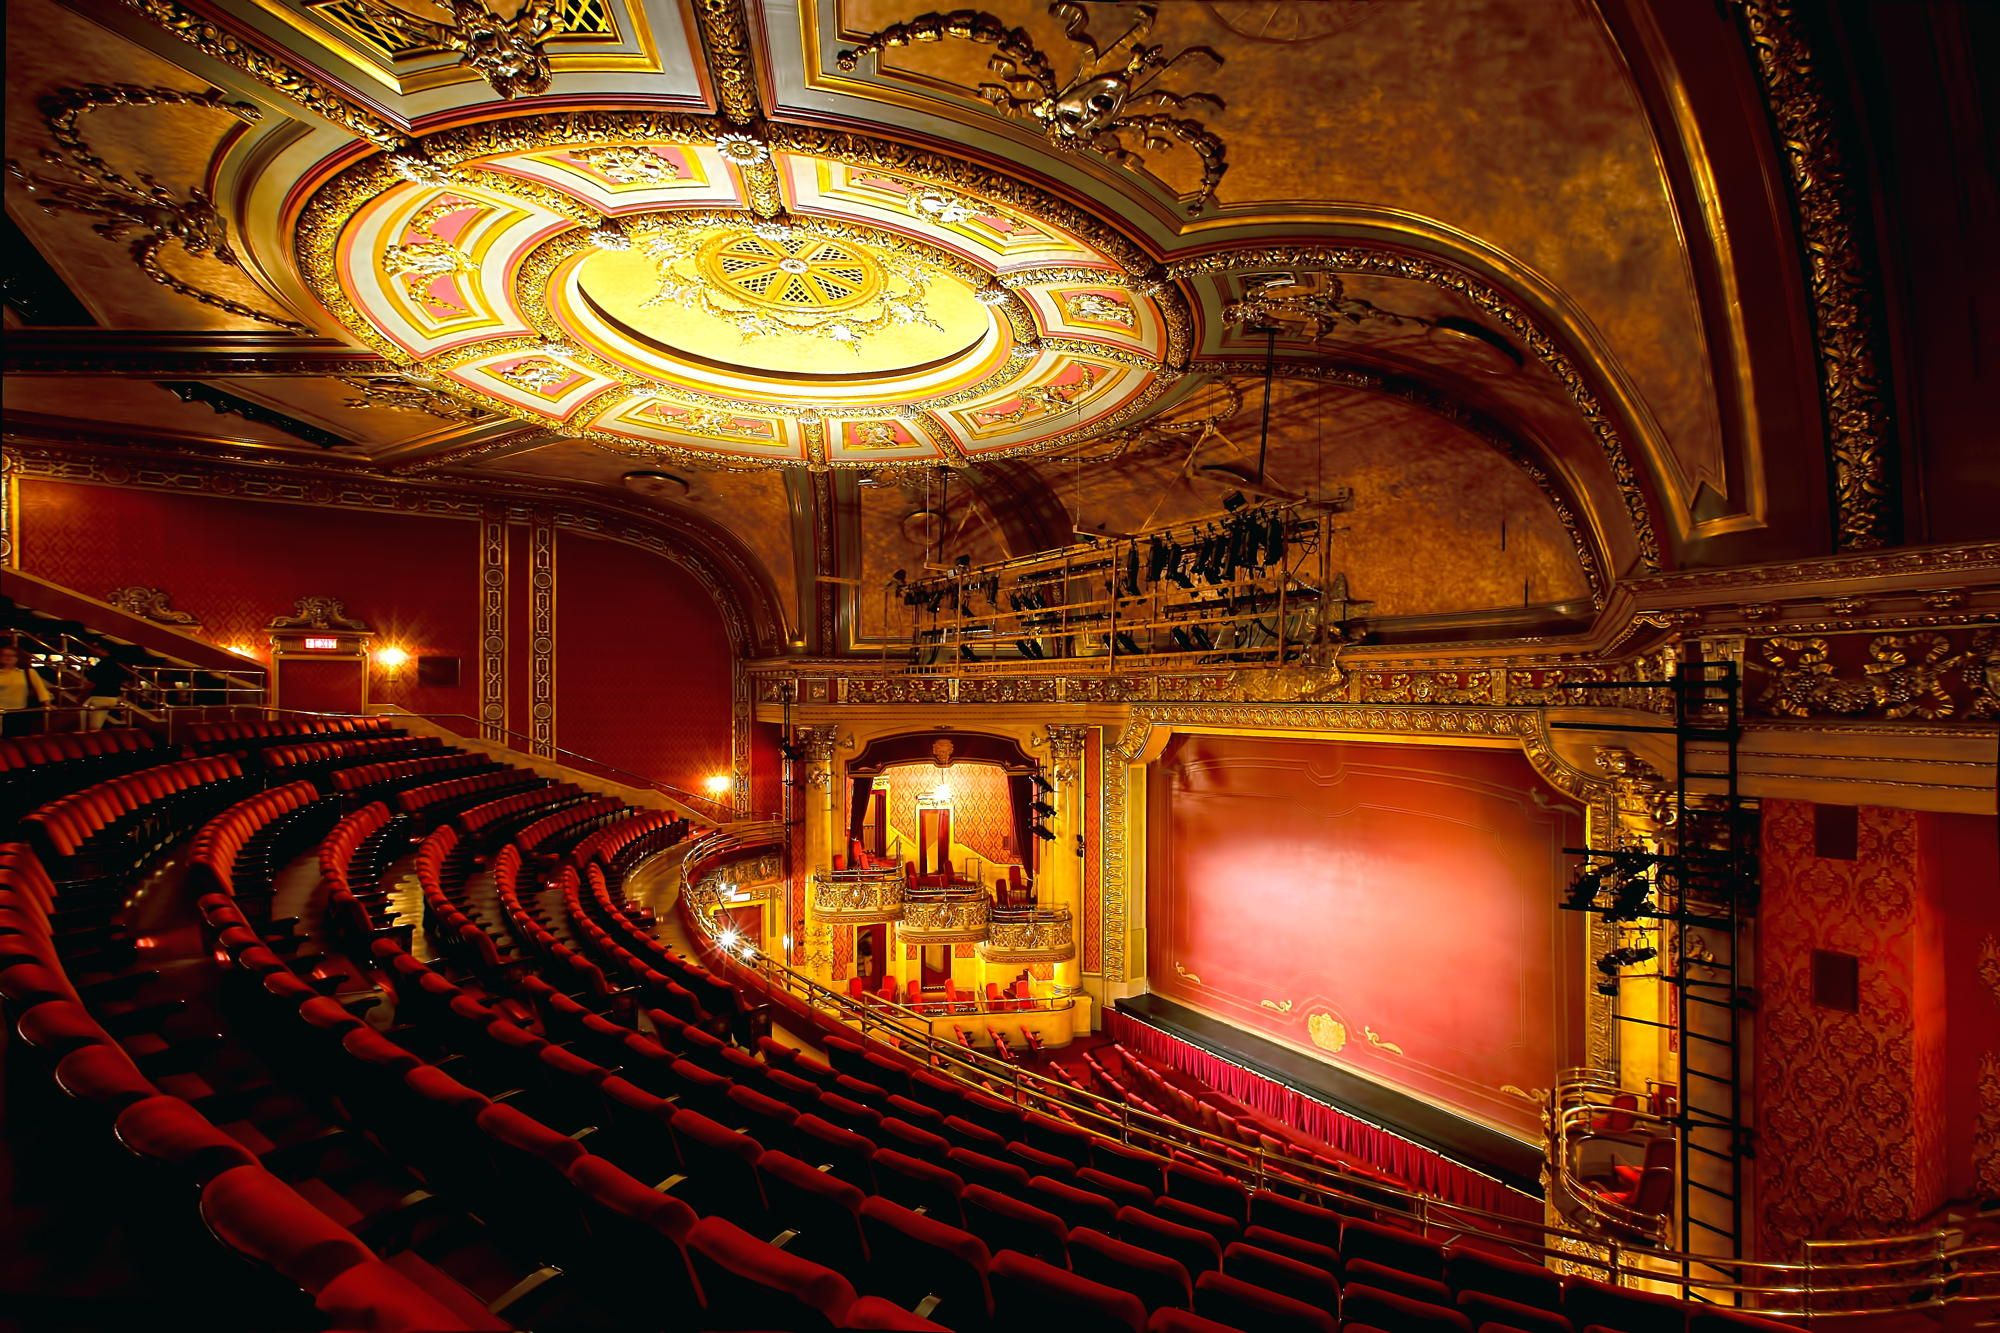 The inside of the Elgin Theatre